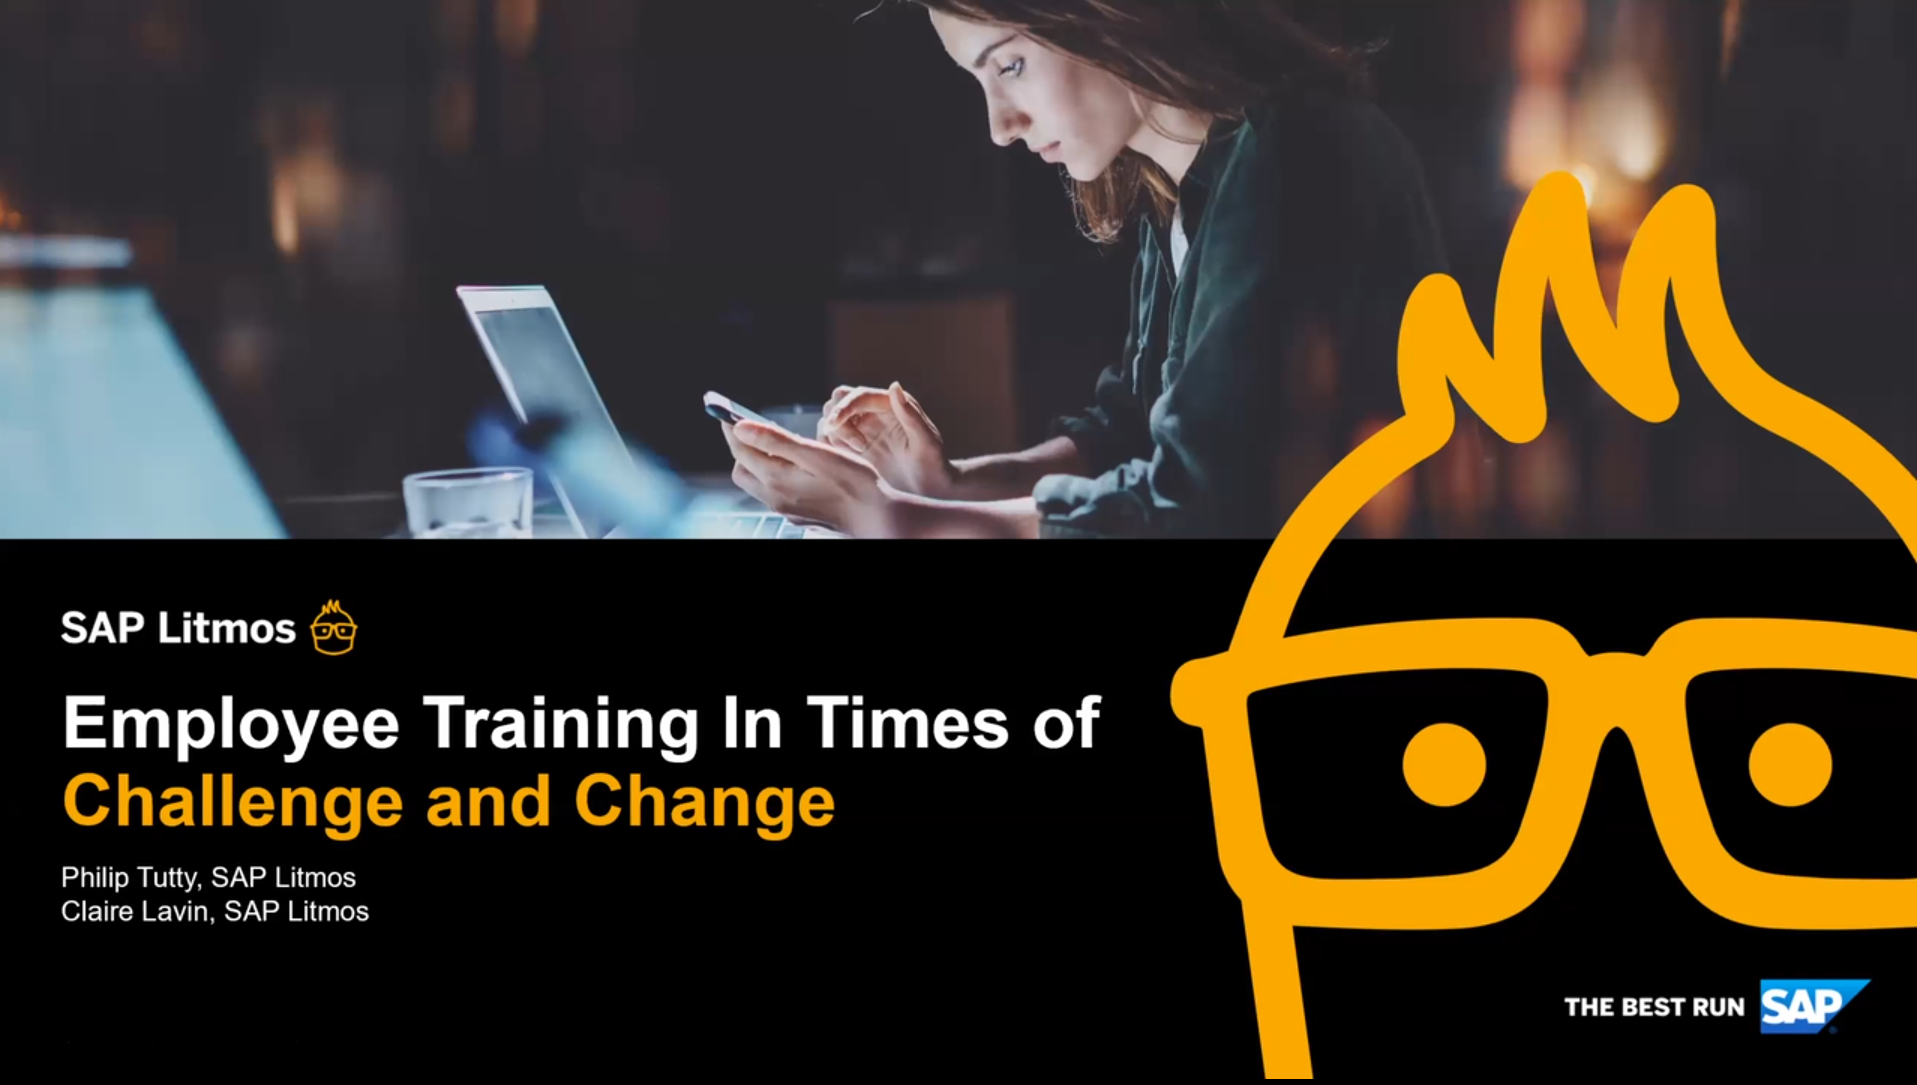 Employee Training in Times of Challenge and Change